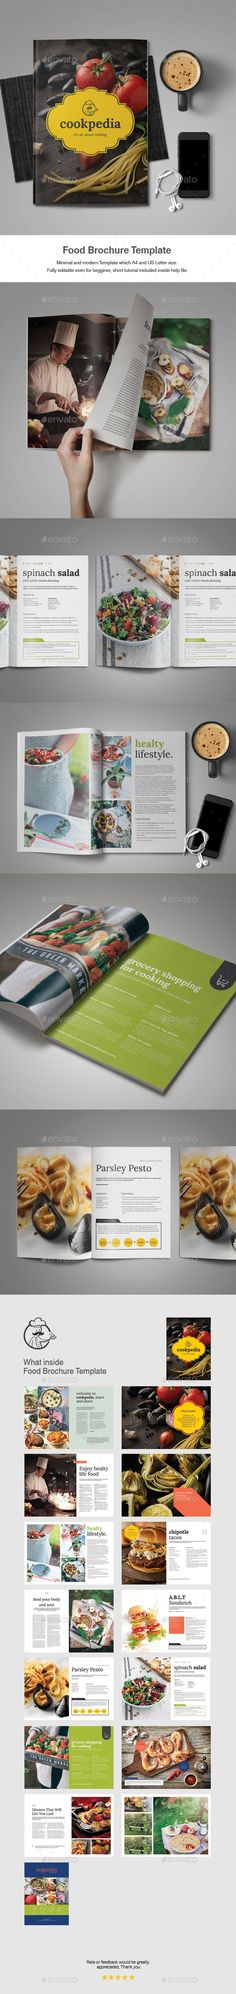 Food Brochure Design Template - Catalogs Brochures Design Template InDesign INDD. Download here: https://graphicriver.net/item/food-brochure-template/18997542?ref=yinkira